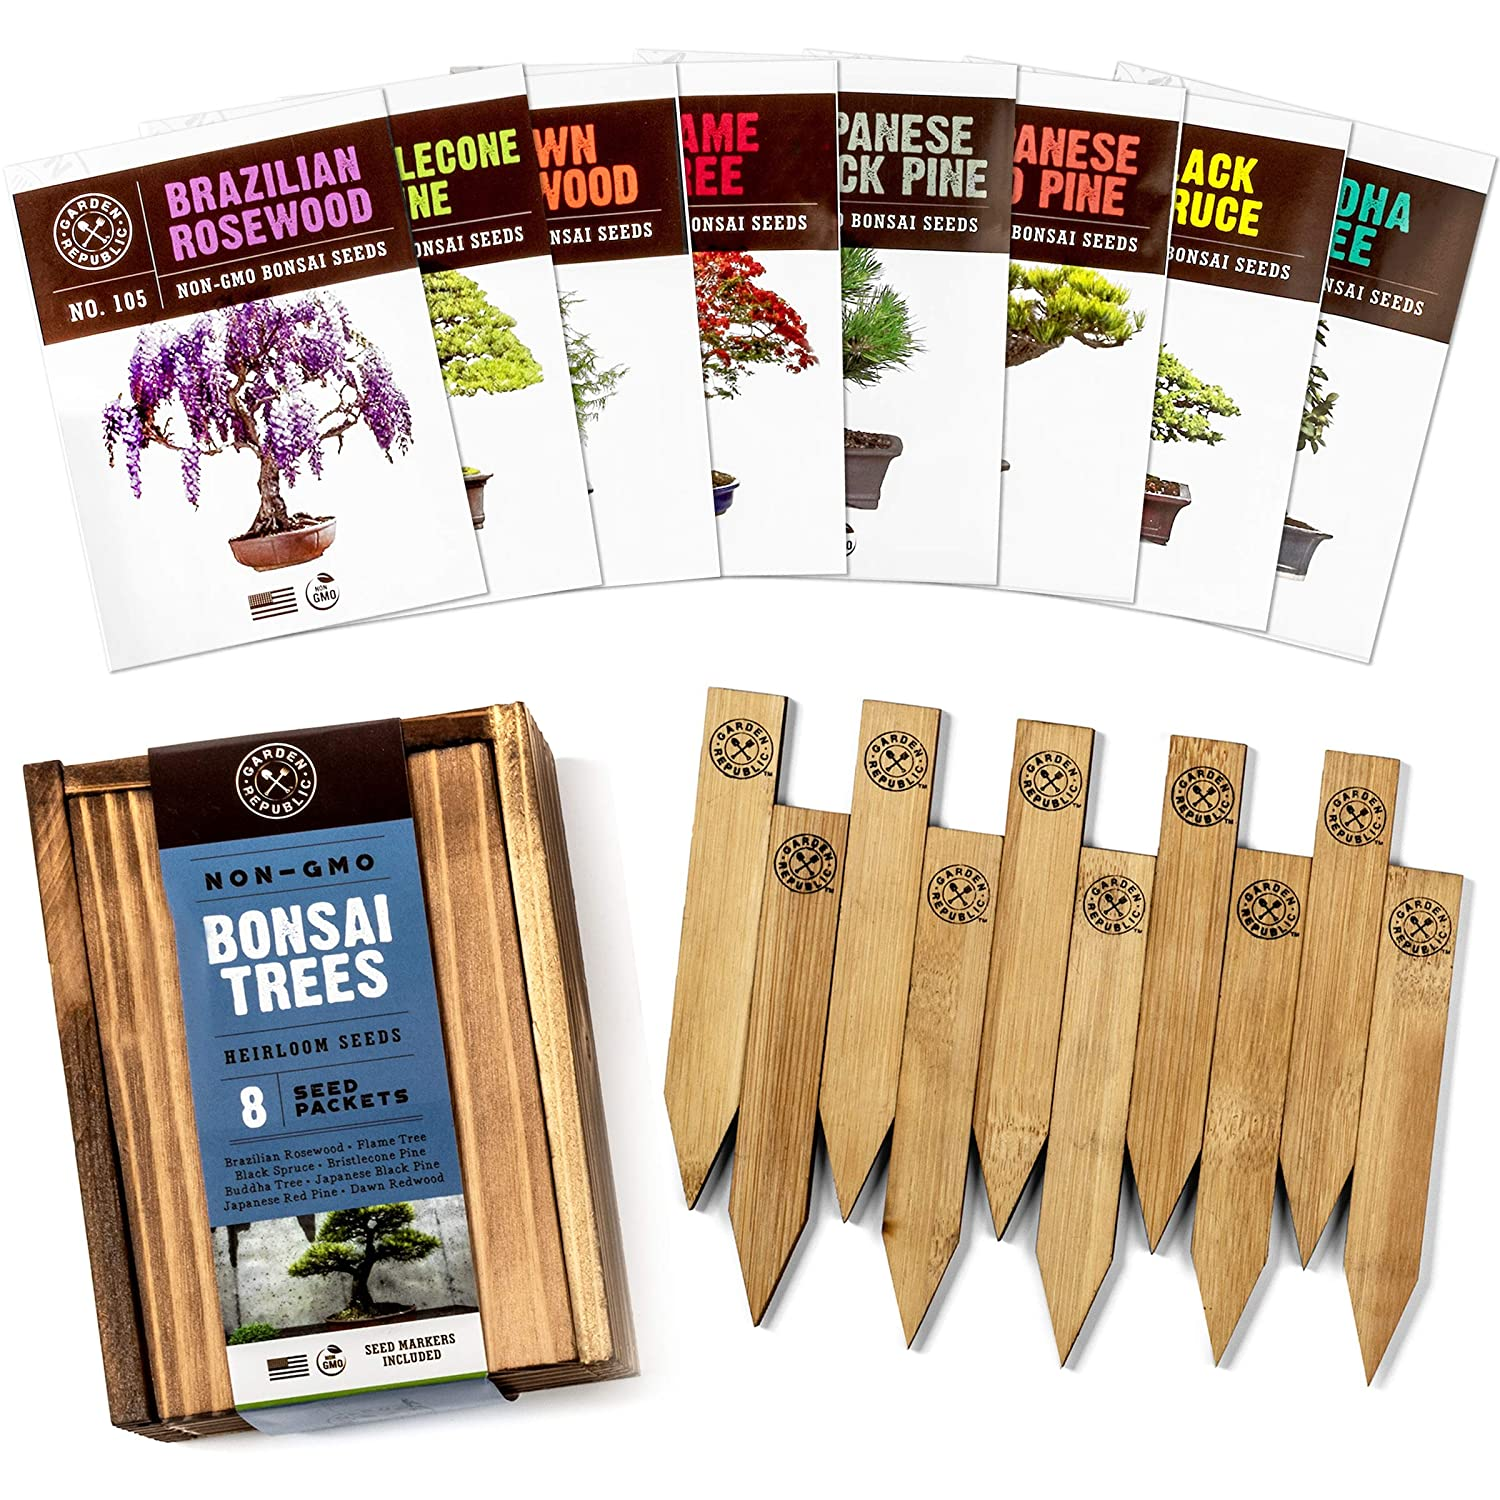 Bonsai Tree Seeds Kit - 8 Popular Varieties of Non GMO Mini Bonsai Trees + Bamboo Plant Markers, Wood Gift Box, Grow Bonzai eBook - Bonzie Tree Seed Starter Kits, Indoor Garden, Gardening Gifts Idea